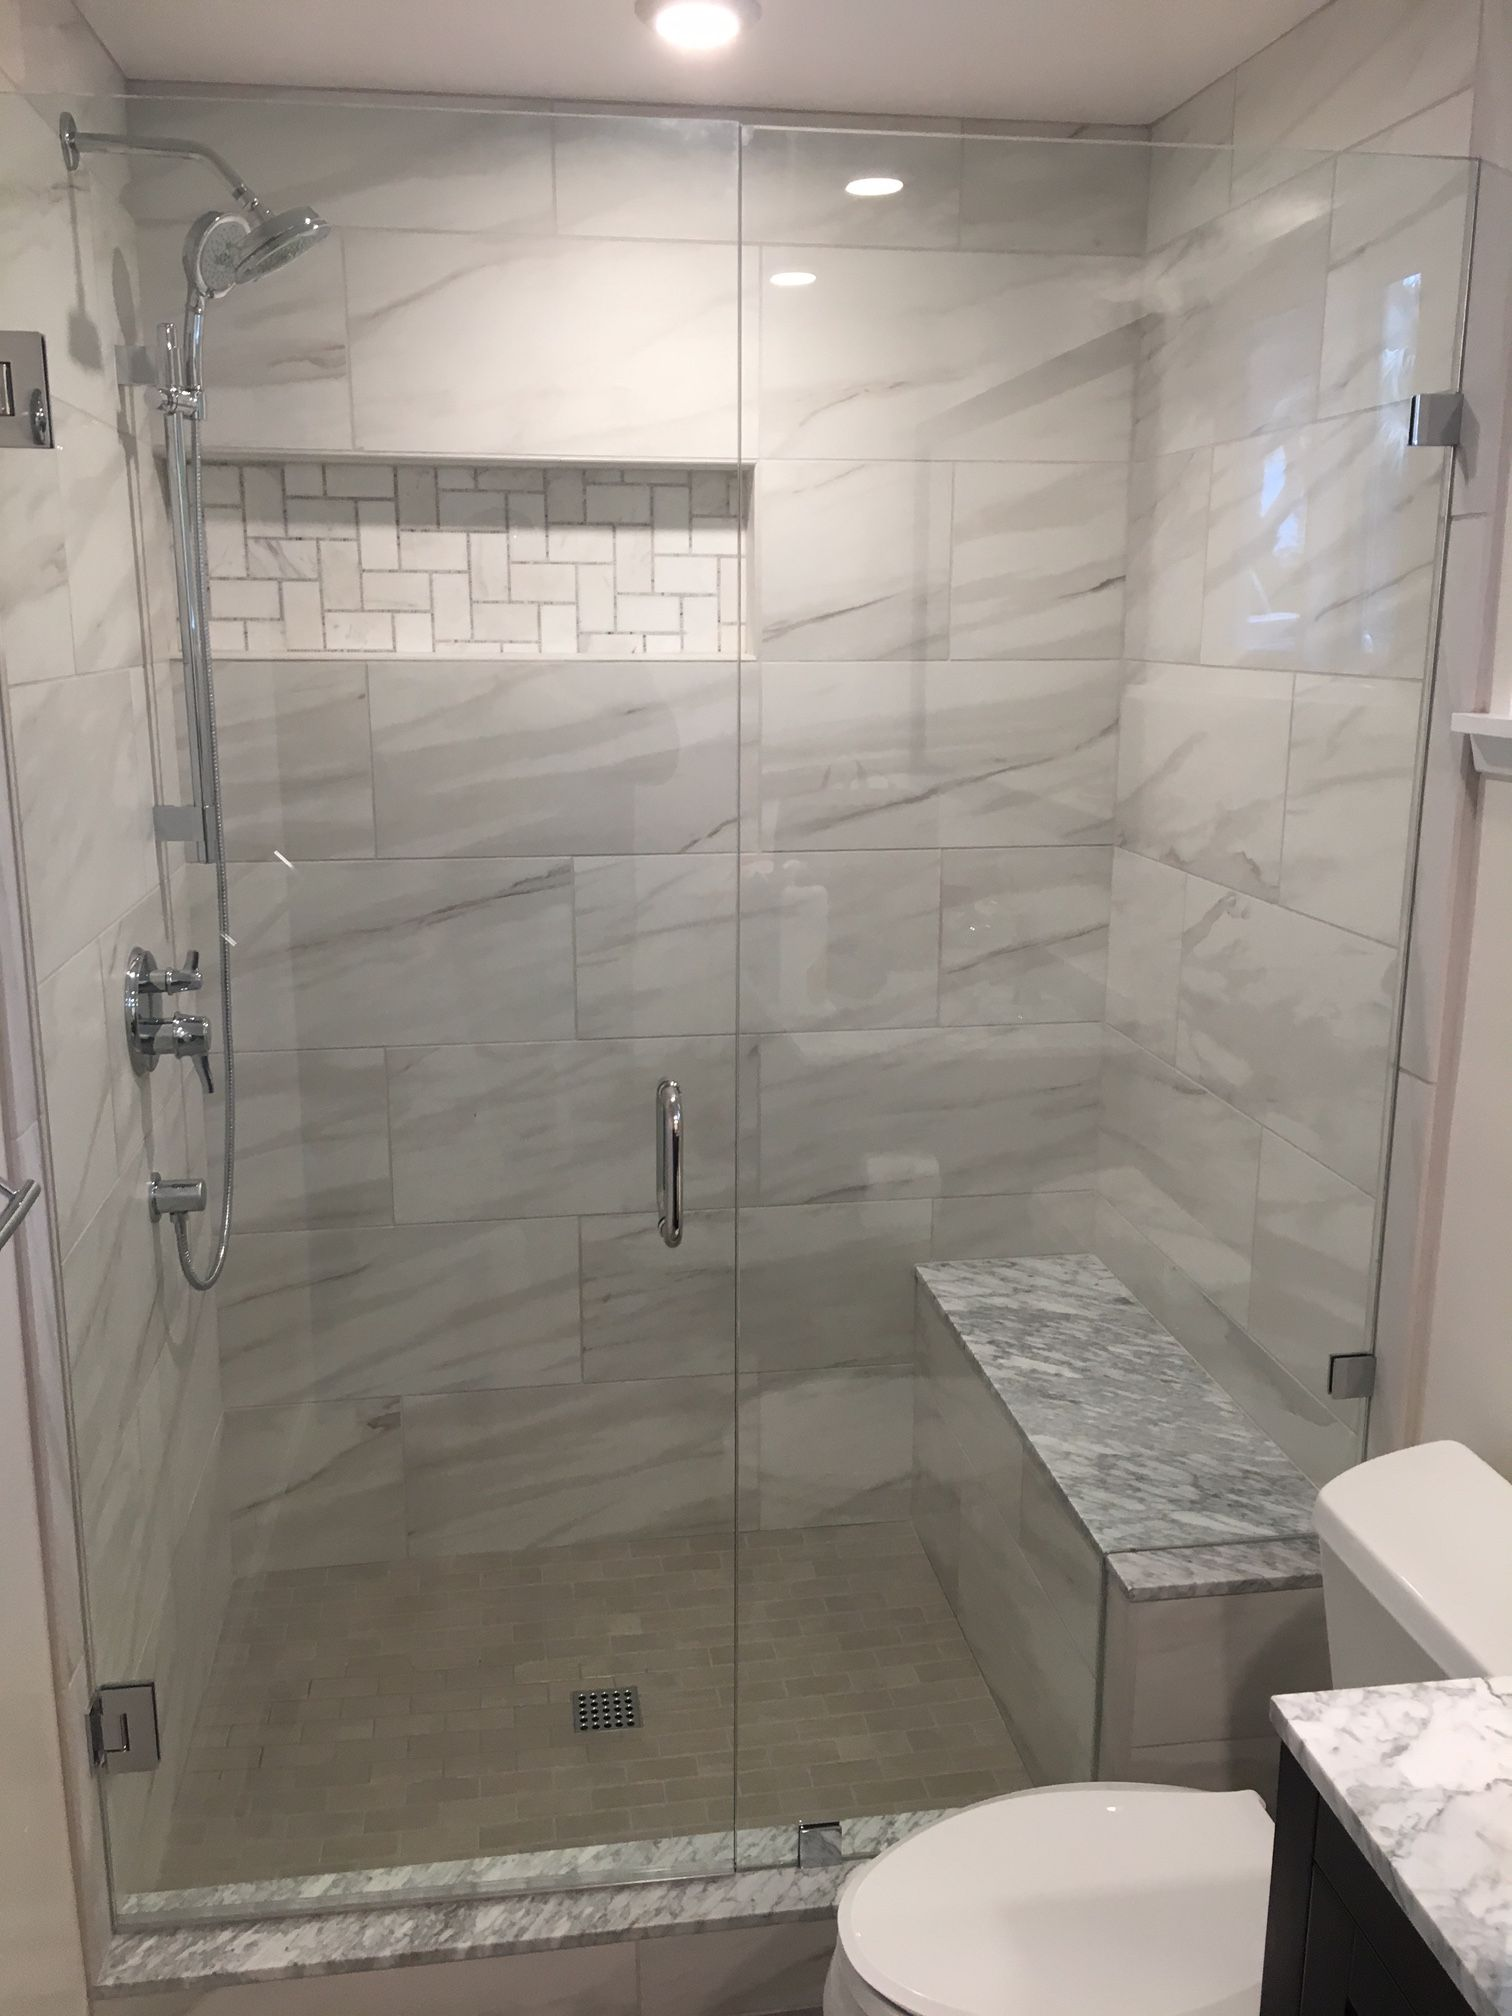 JK Wood Construction Porcelain shower-walls and floor, carrara marble bench and countertop  and accent